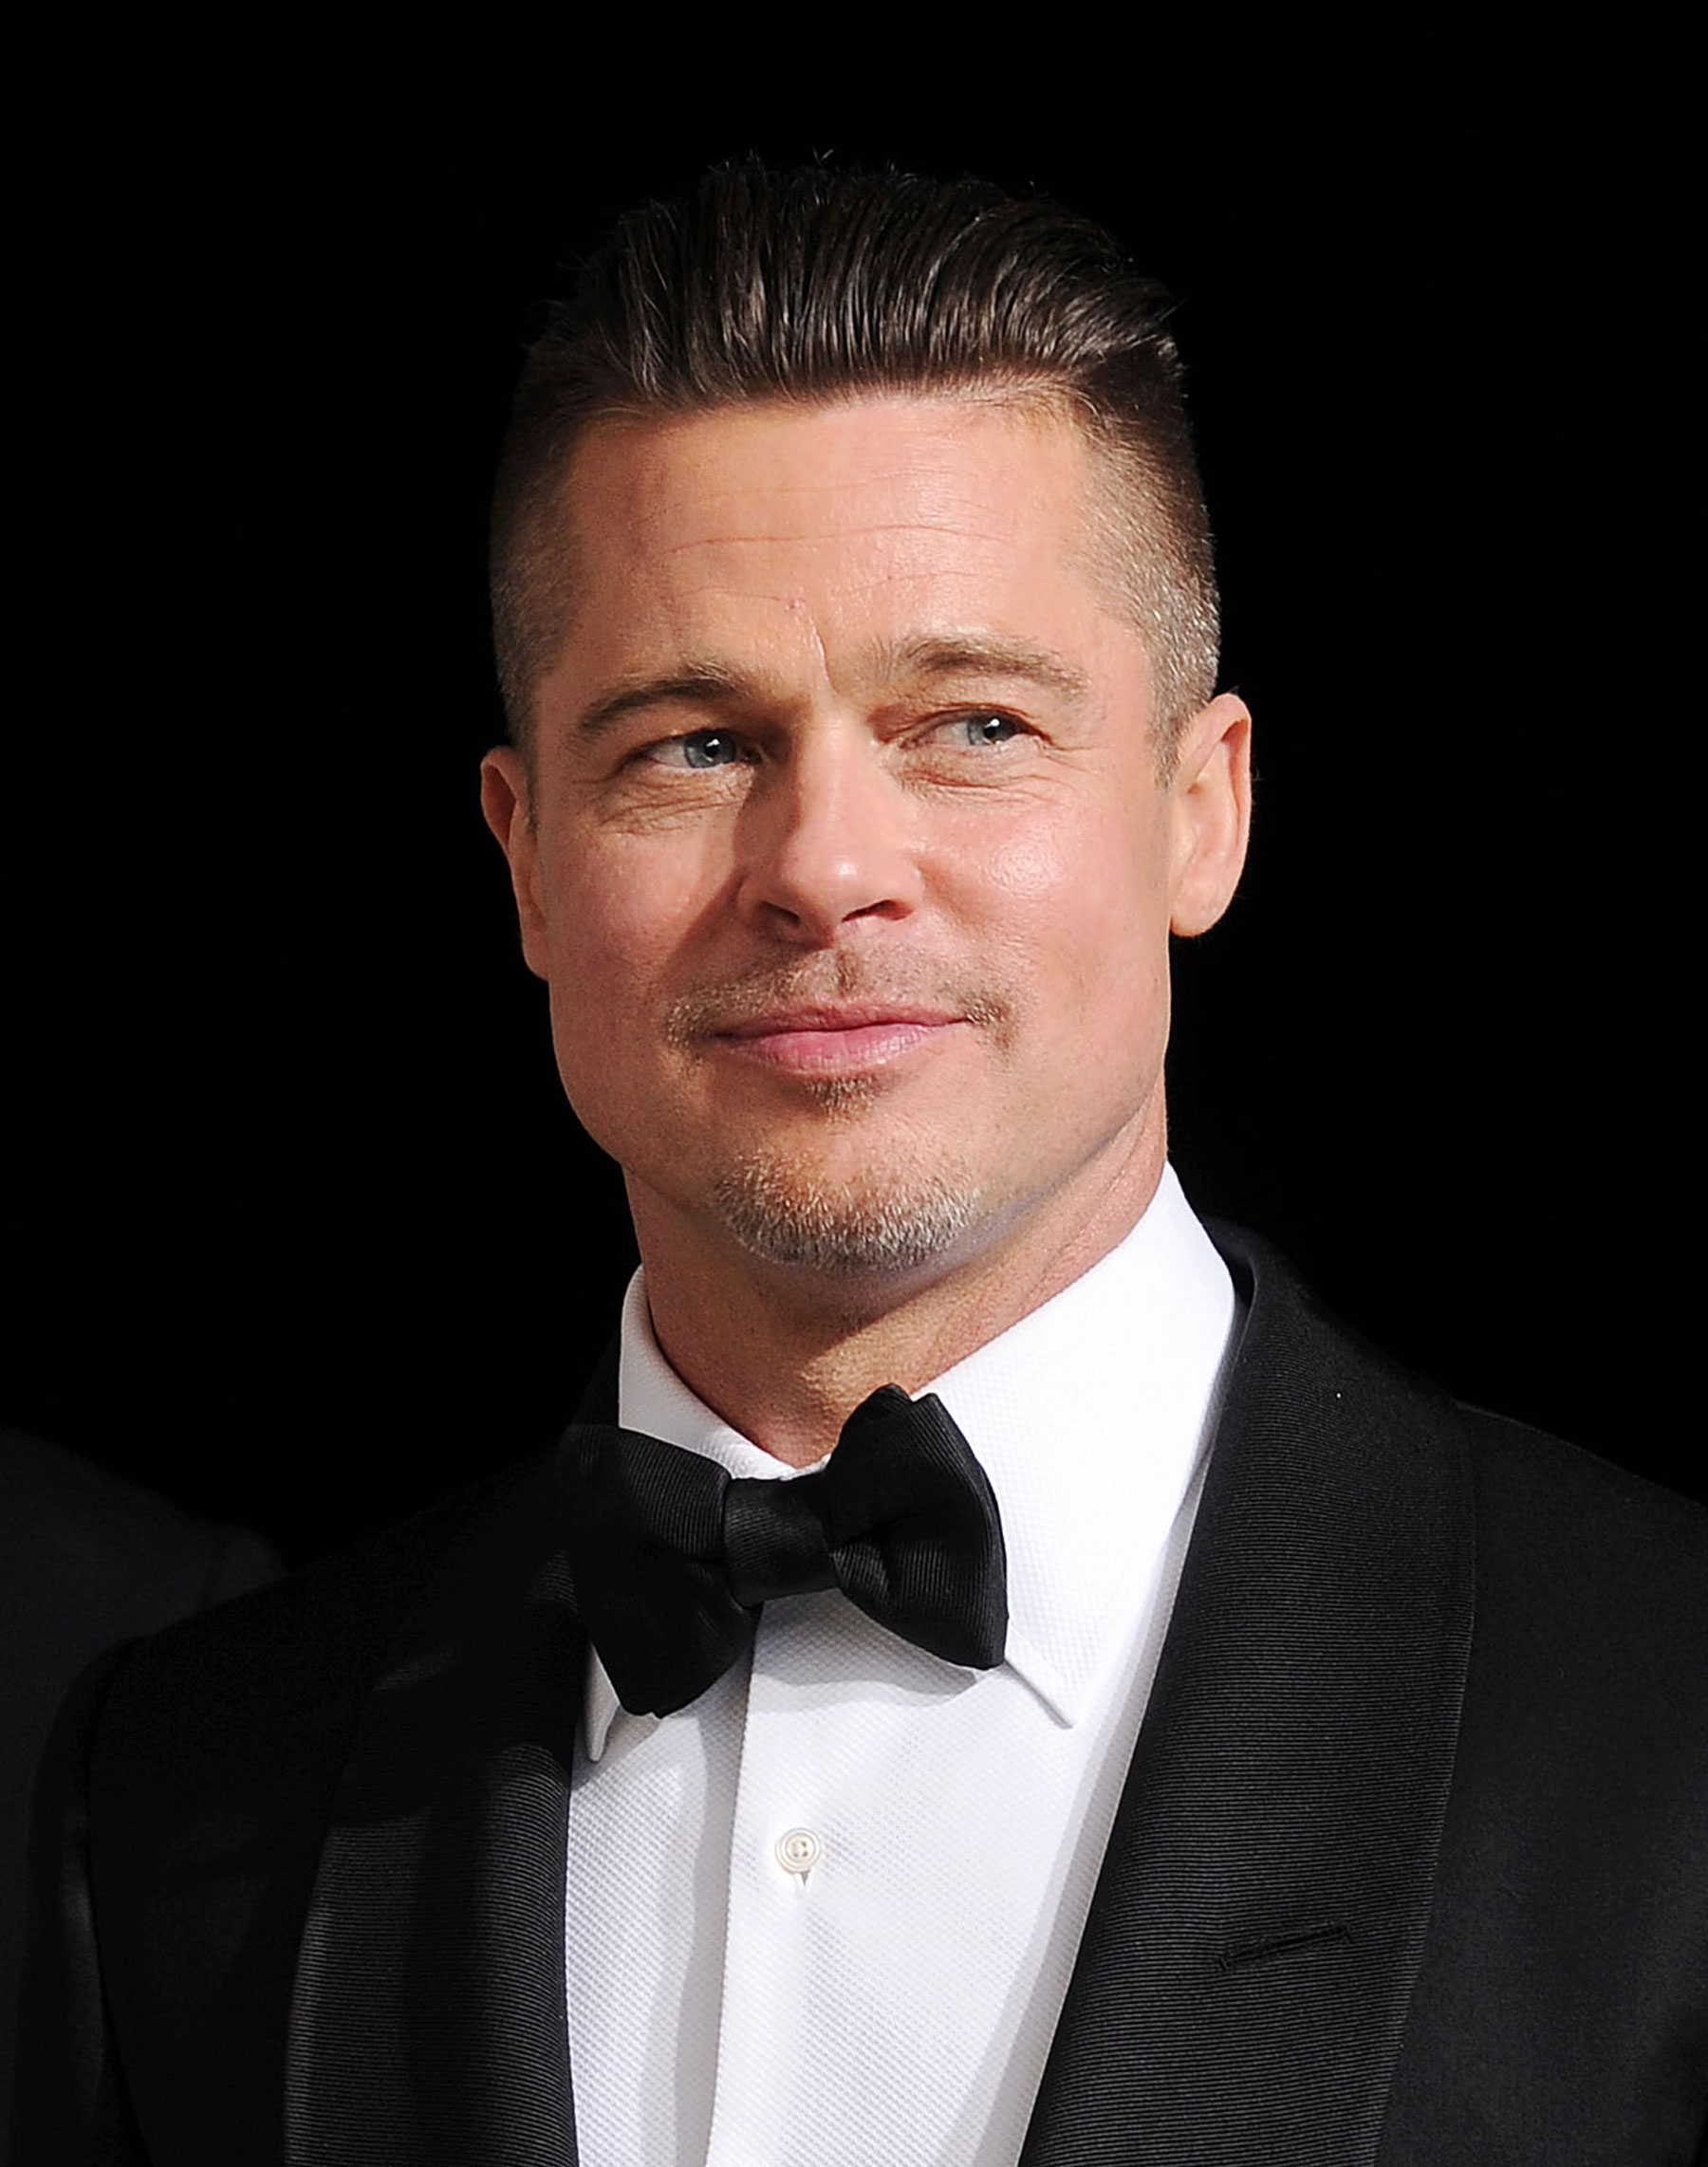 Brad Pitt To Star As General Mcchrystal In The Operators